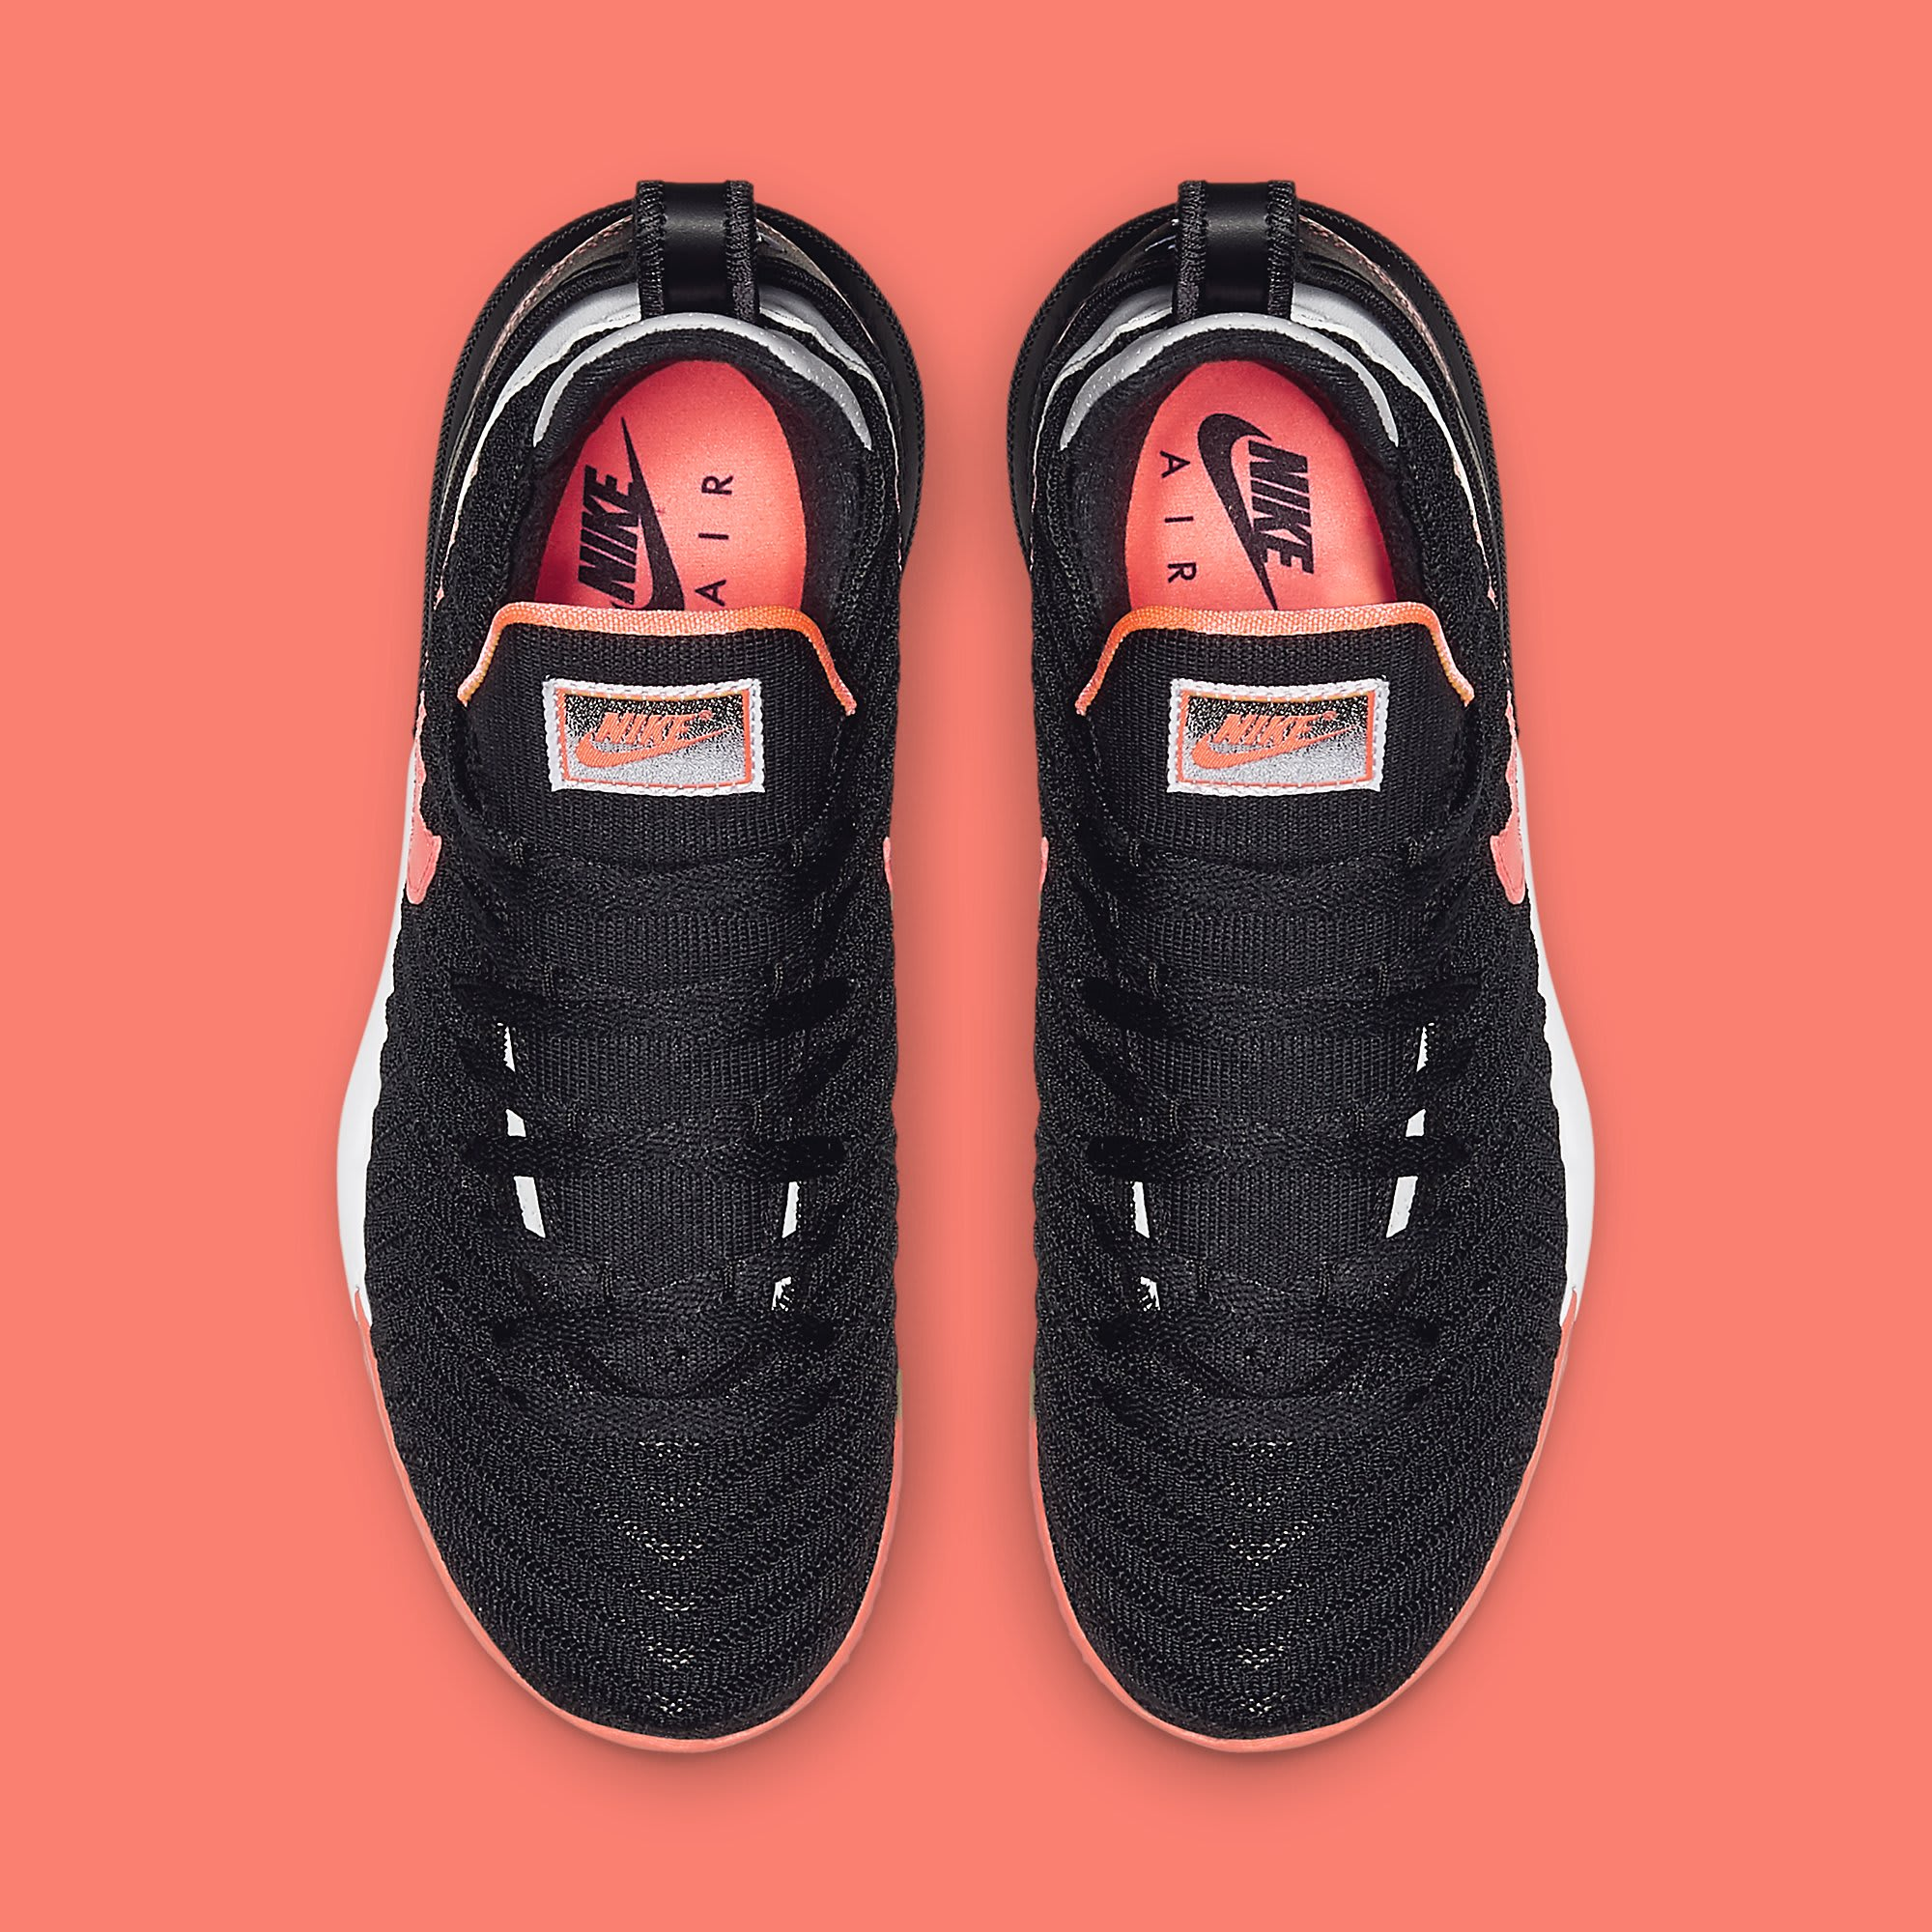 Nike LeBron 16 'Hot Lava' Black CI1521-001 Top